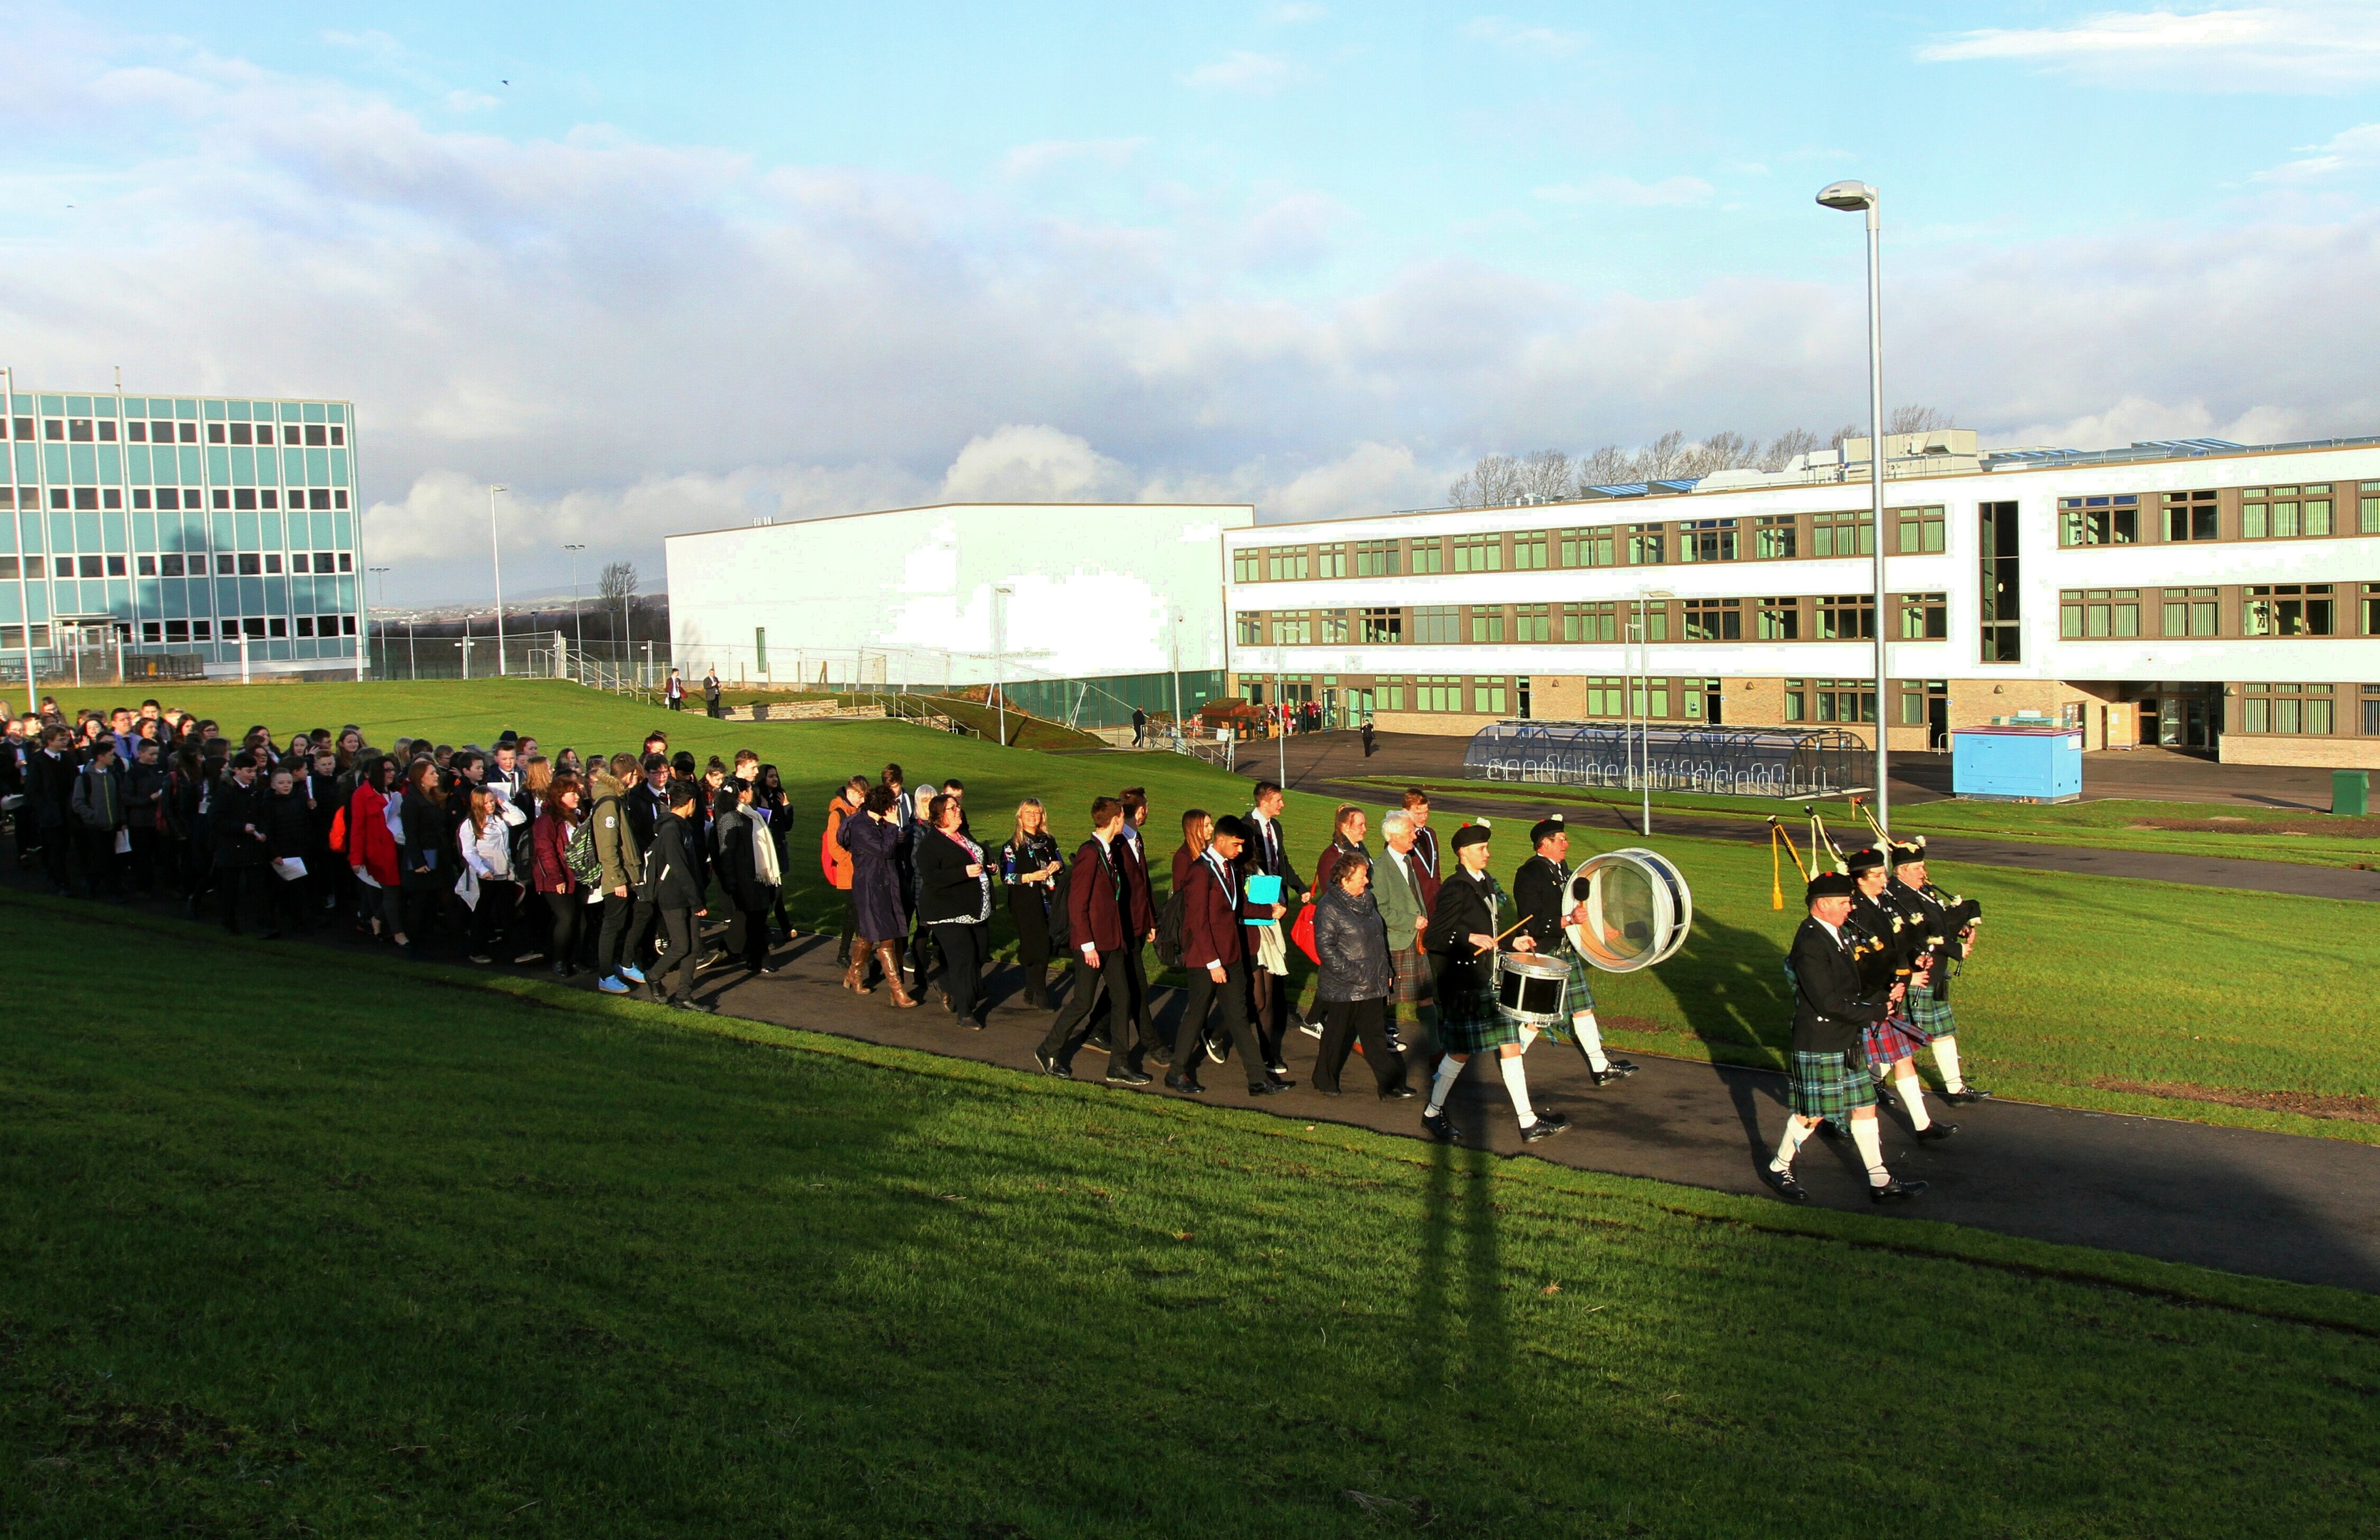 Pupils were ceremonially piped from the old school (left) to the new when it opened for lessons.